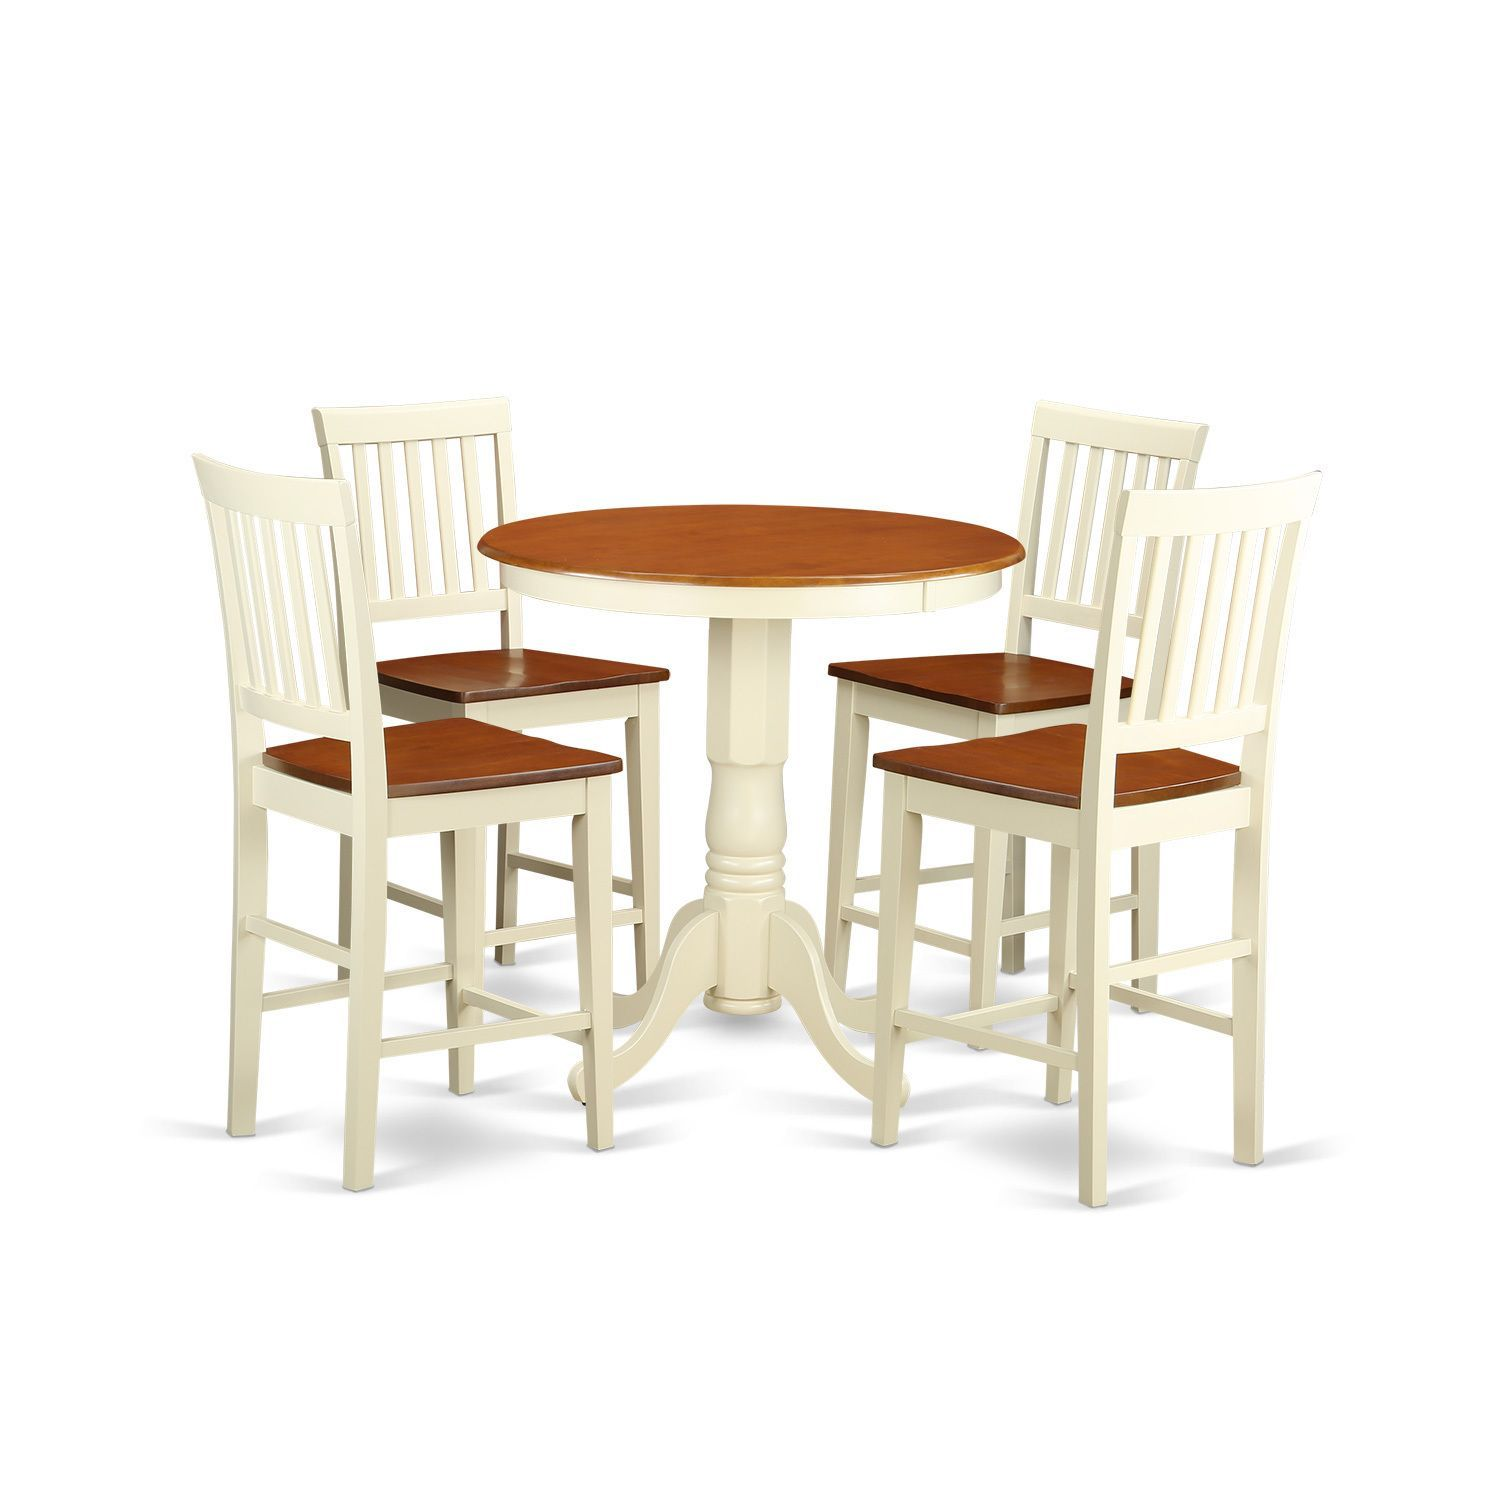 Cream and Off-white Solid Wood Five-piece Pub Table Kitchen Dinette ...